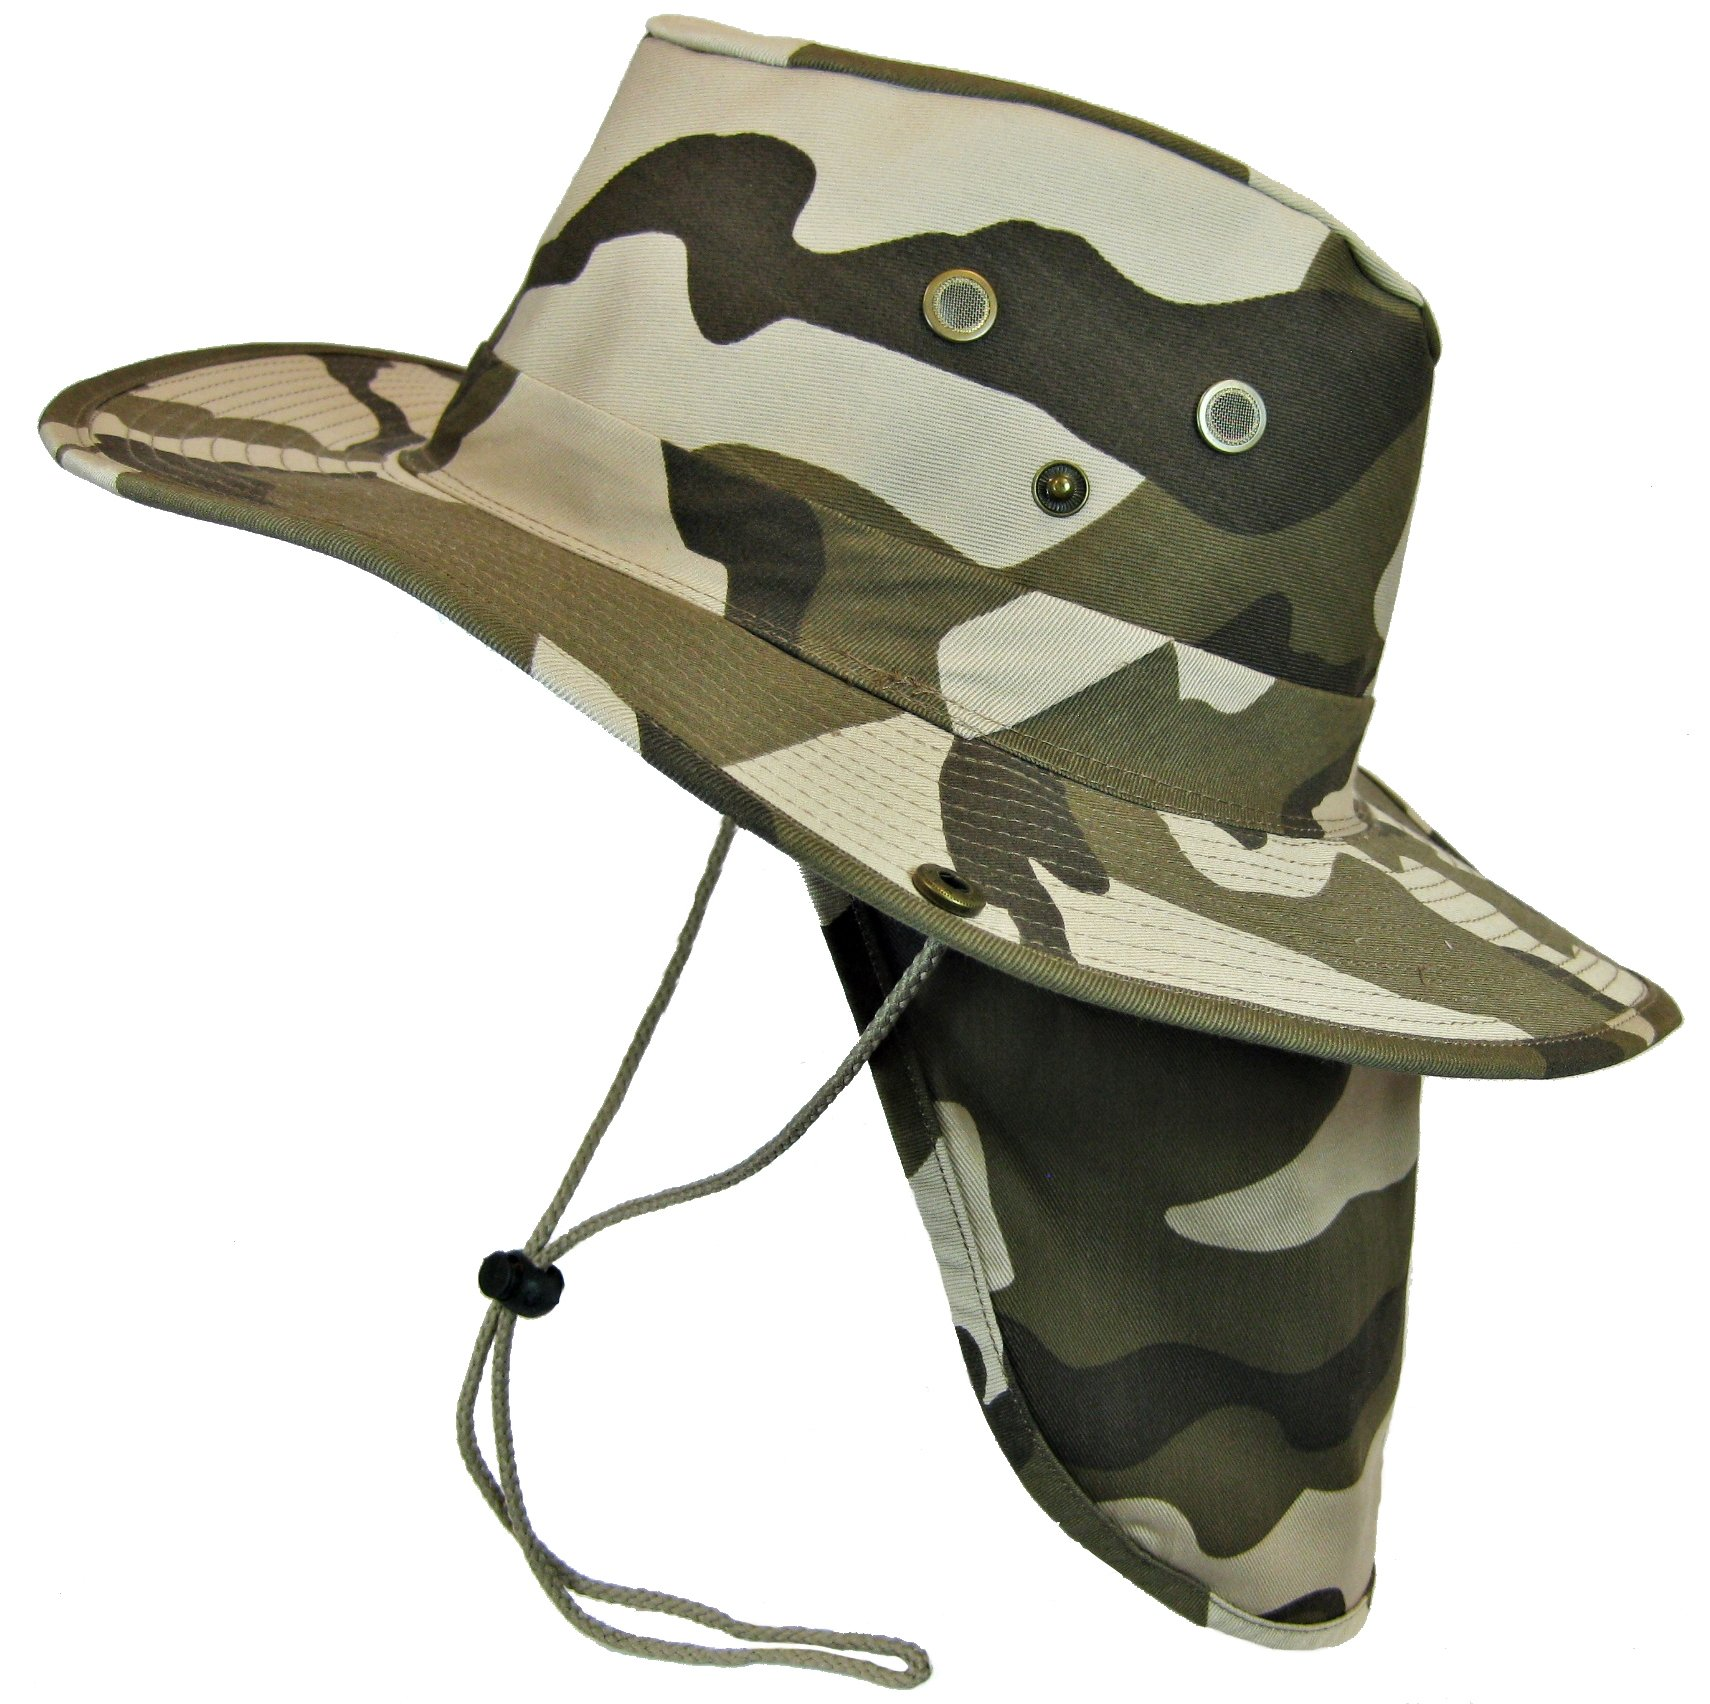 Boonie Bush Safari Outdoor Fishing Hiking Hunting Boating Snap Brim Hat Sun Cap with Neck Flap (Desert Camo, XL) by SW